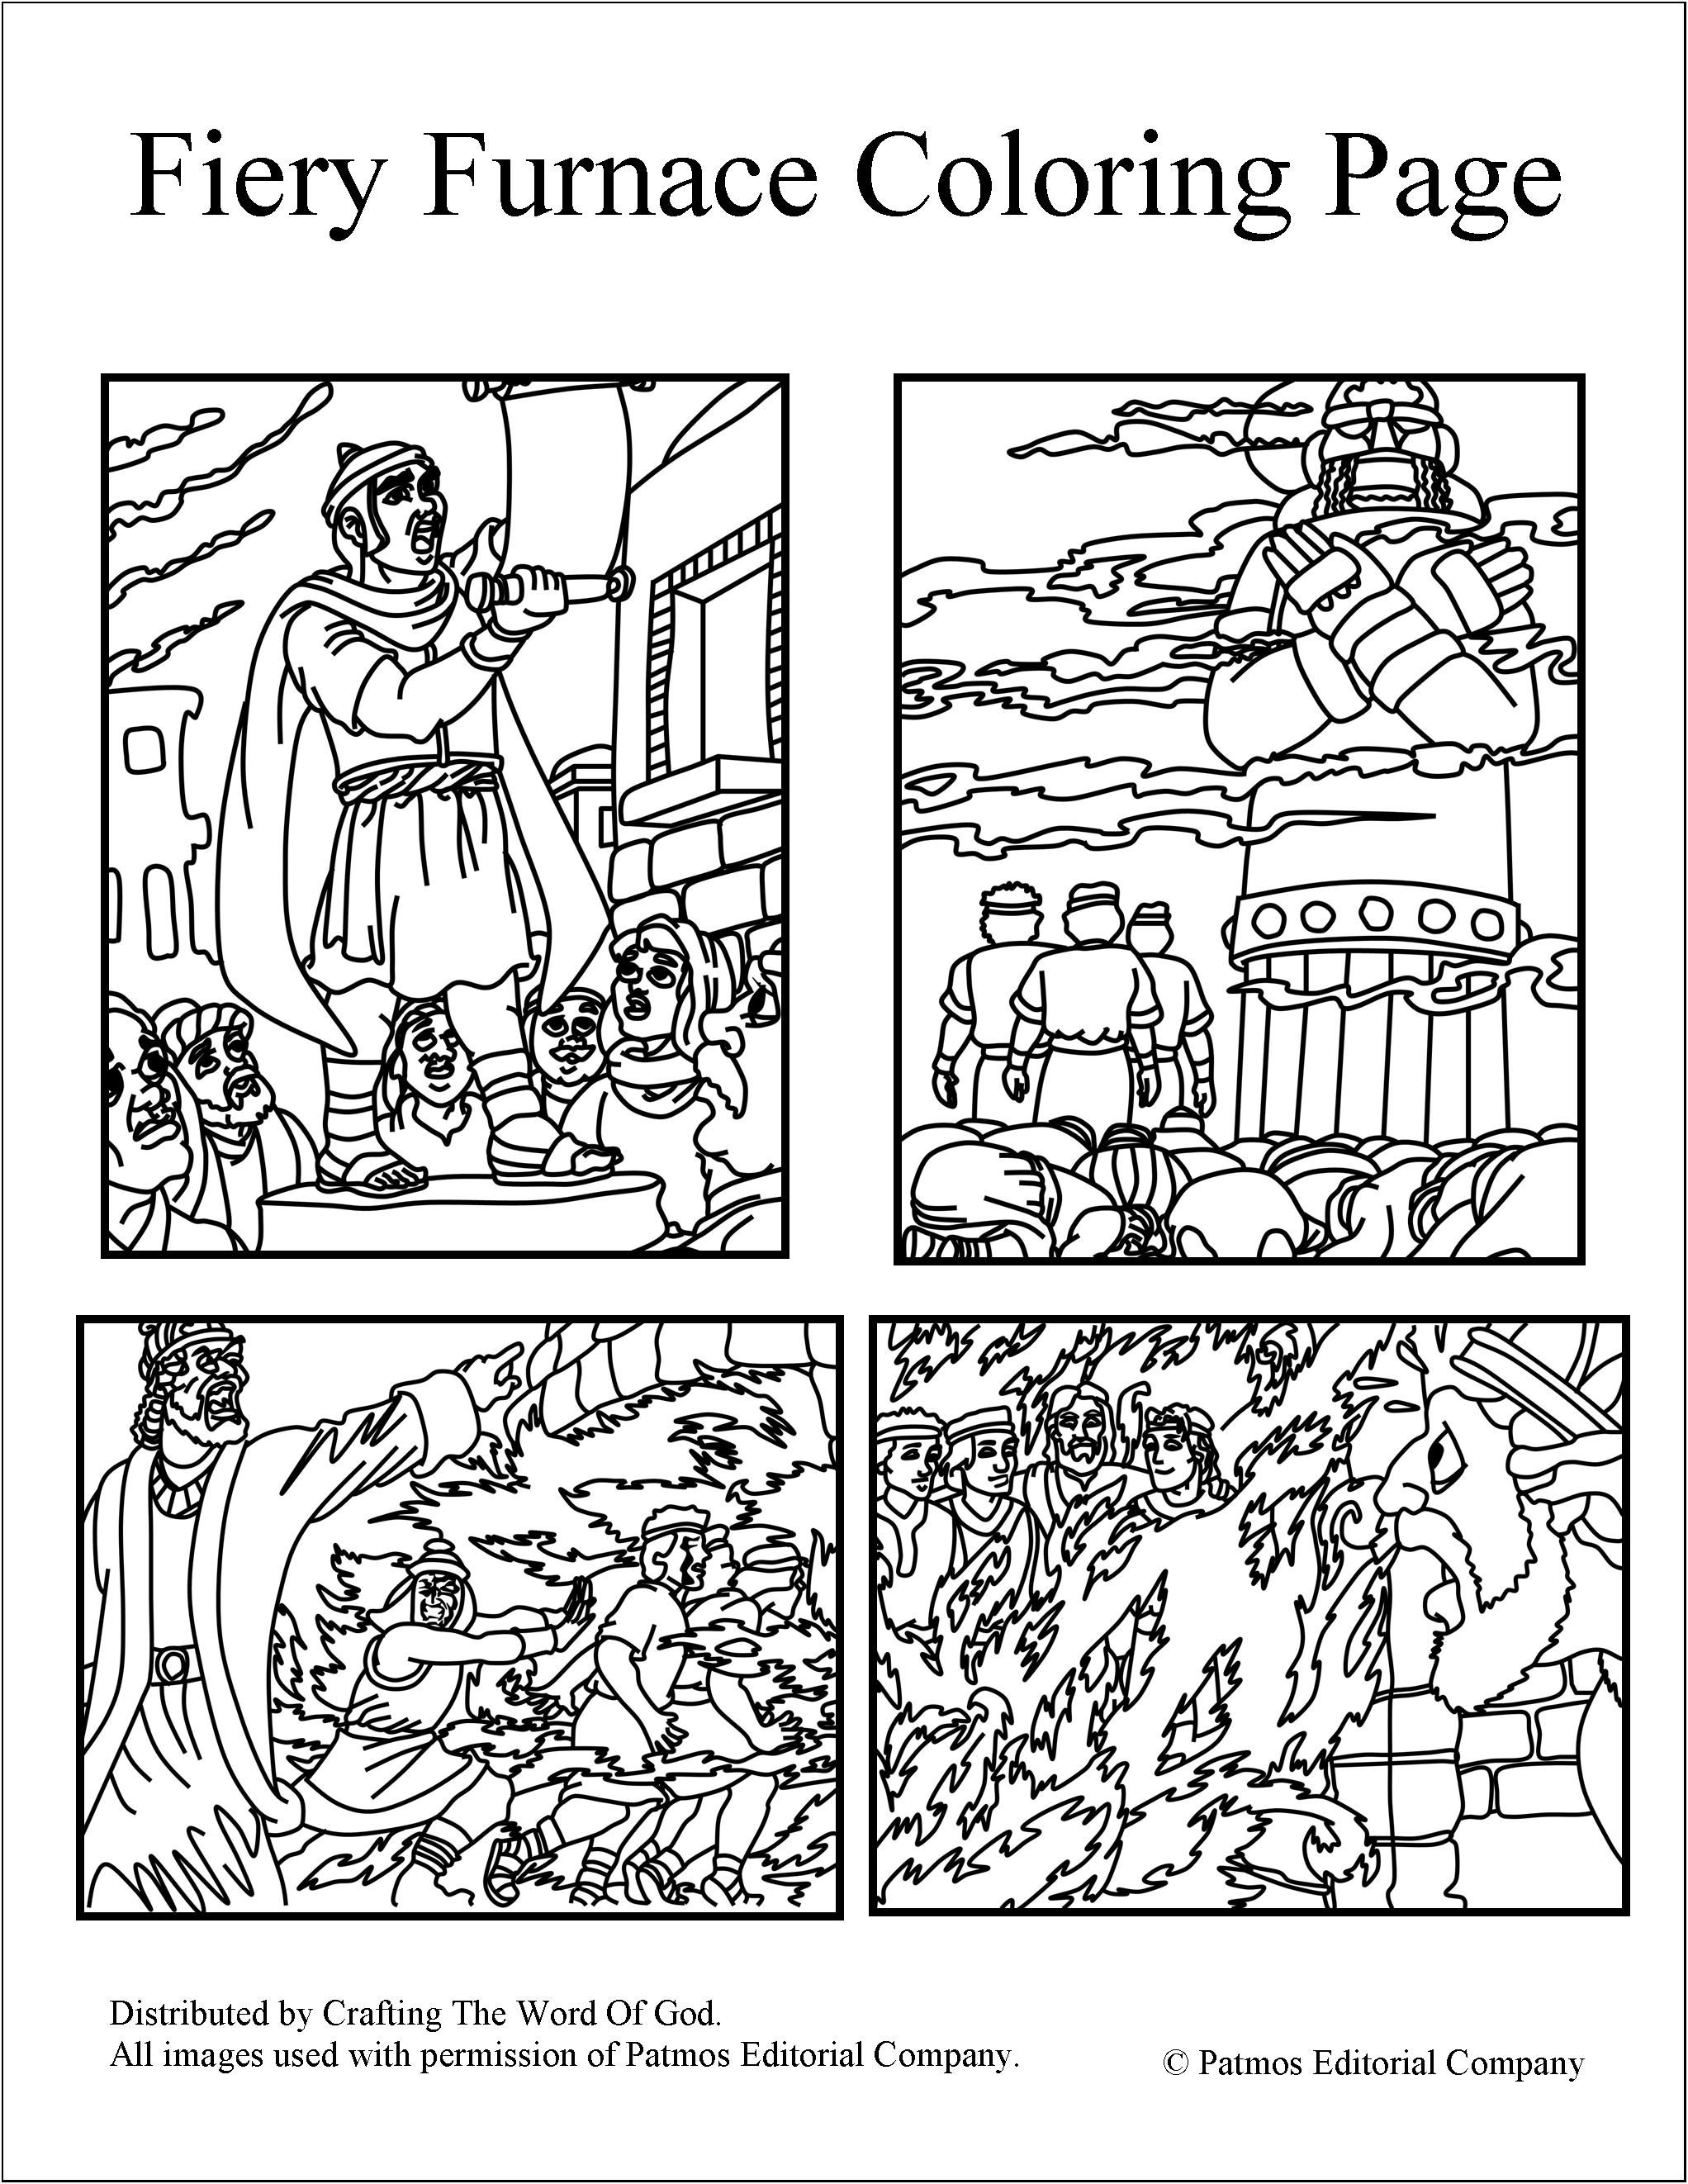 Fiery Furnace Coloring Pages Day 3 Journey Off The Map Crafts